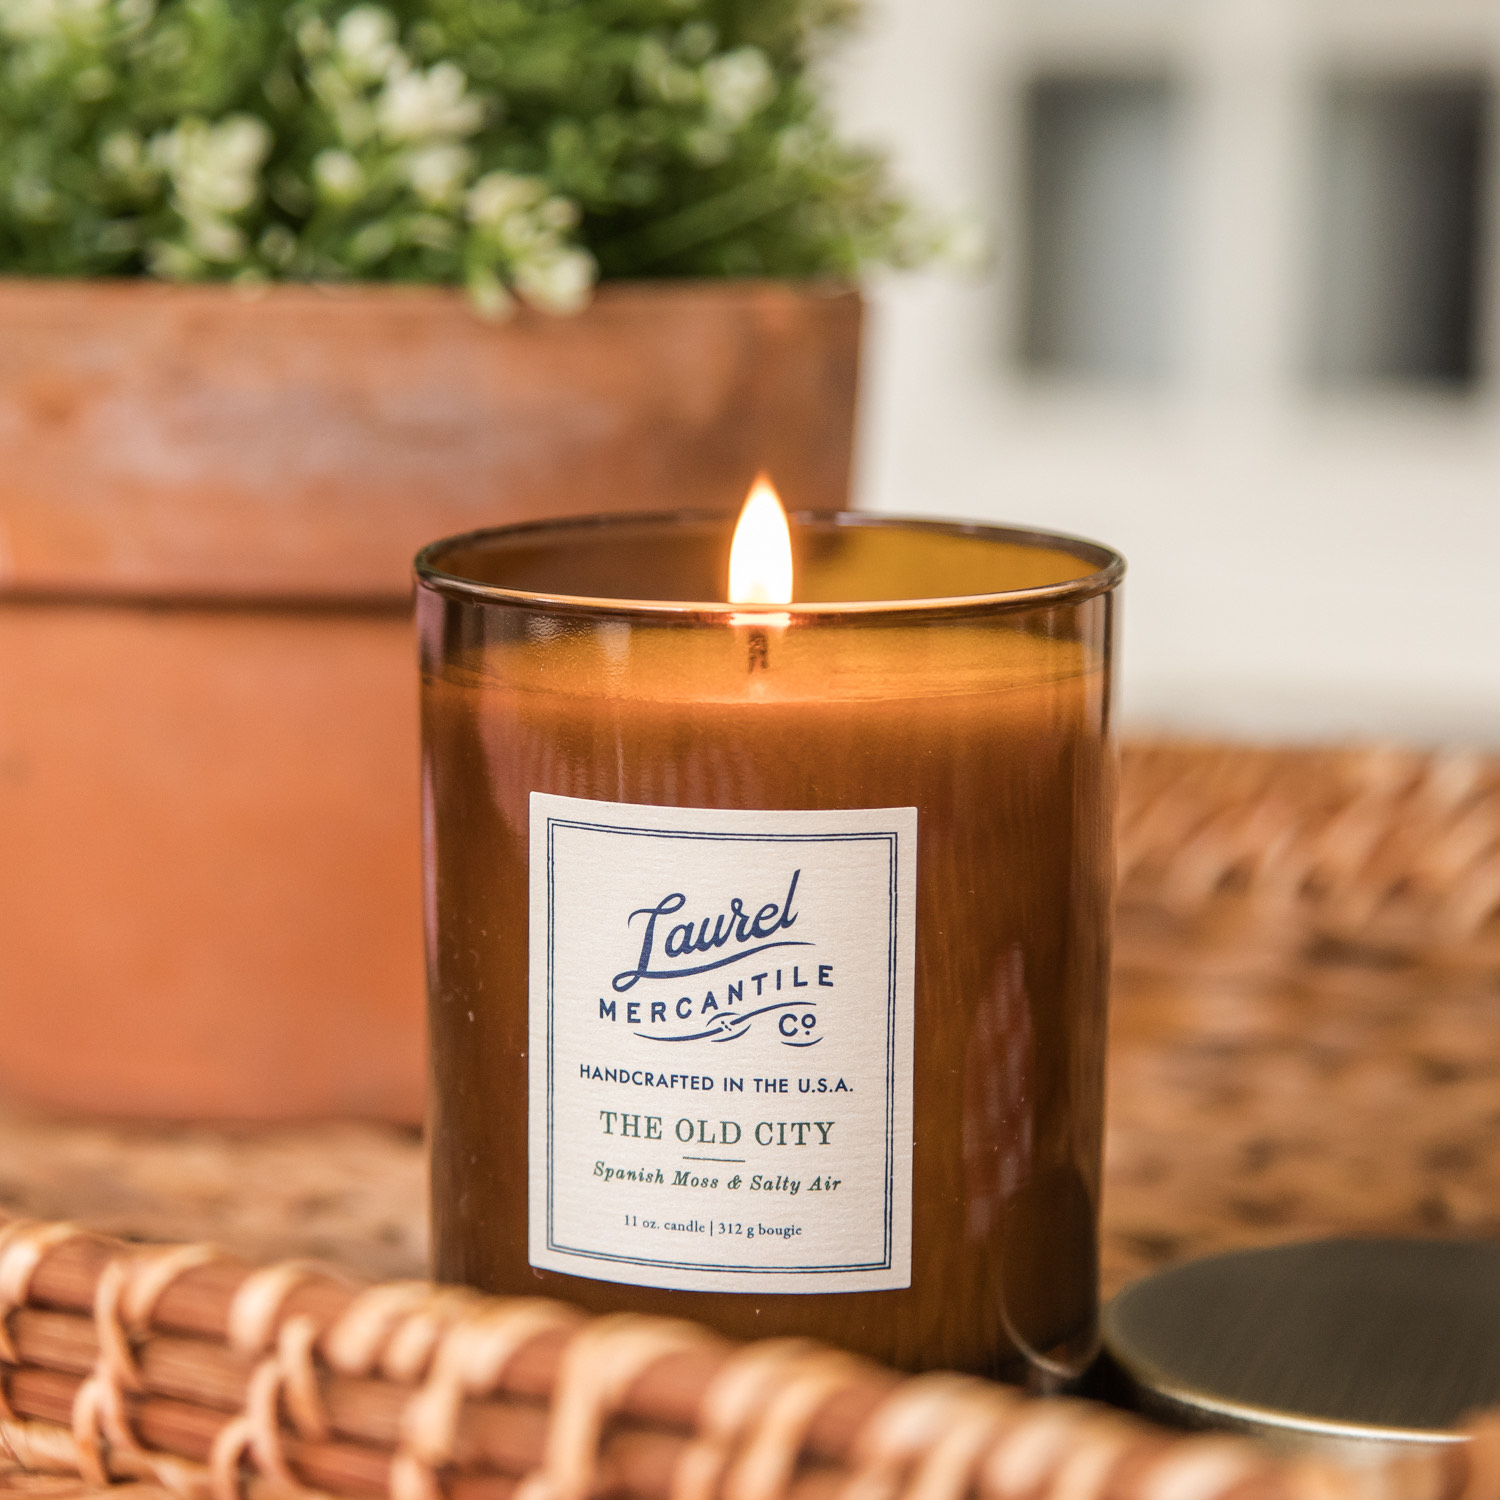 Laurel Mercantile New Candle